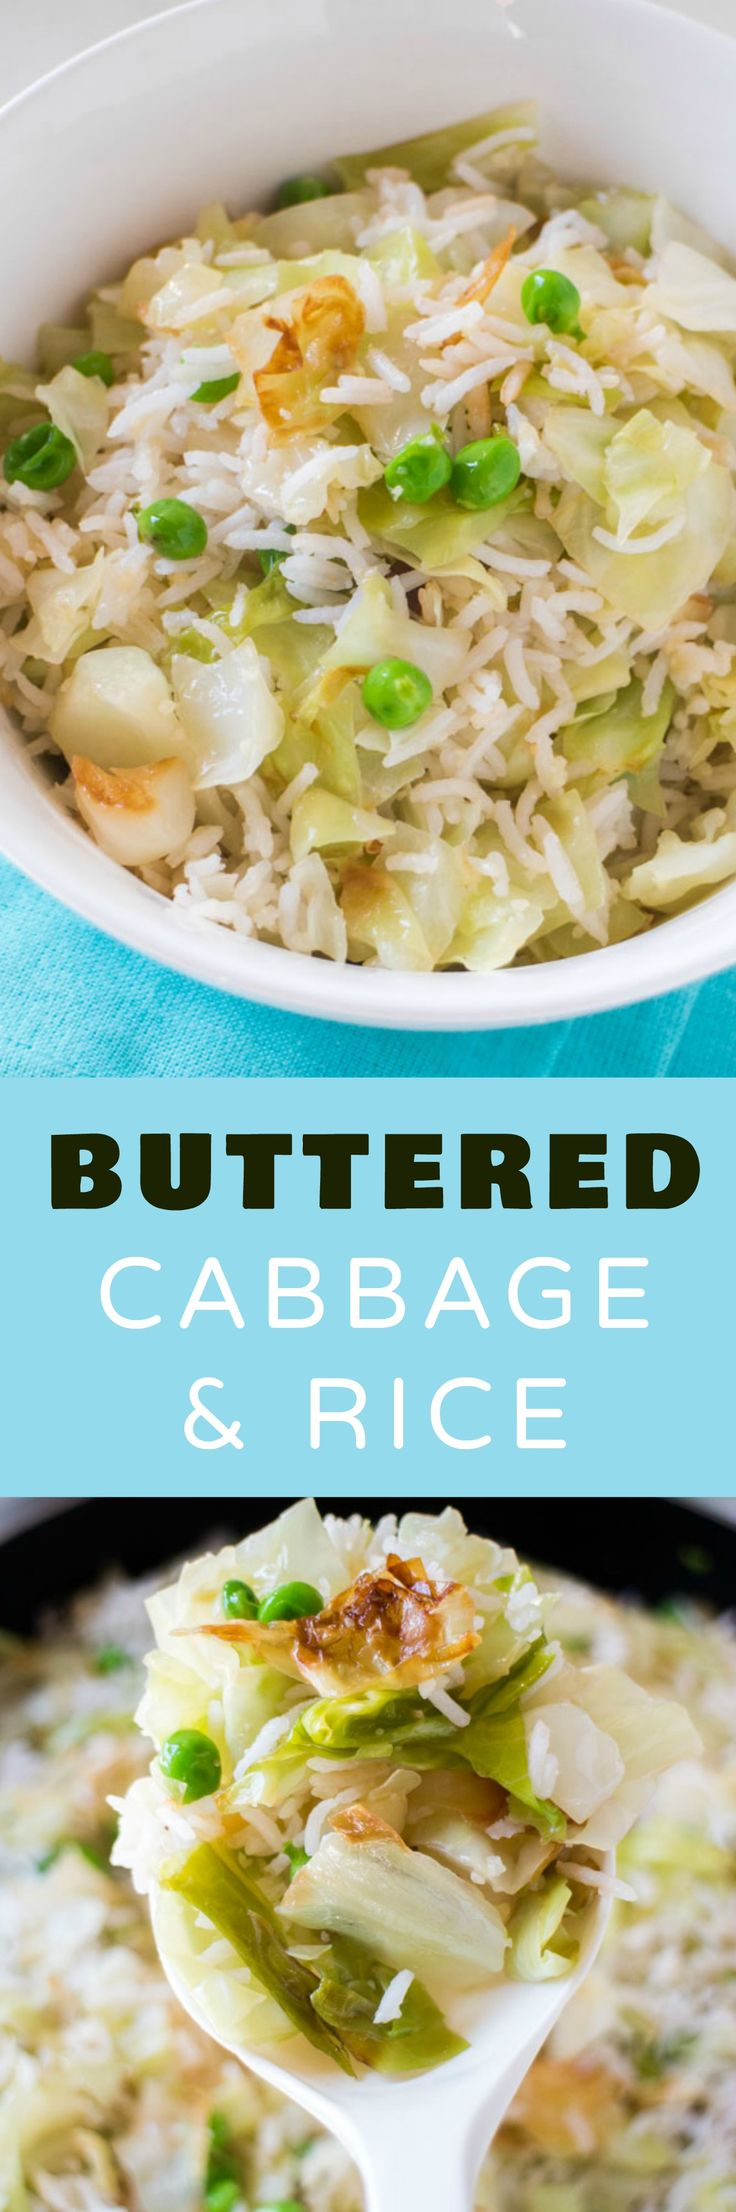 20 MINUTE Buttered Cabbage and Rice dinner! This is one of my favorite weeknight recipes that uses sauteed cabbage and peas! It's a healthy, easy vegetarian meal my entire family loves! You can even use instant rice to make it even more simple!